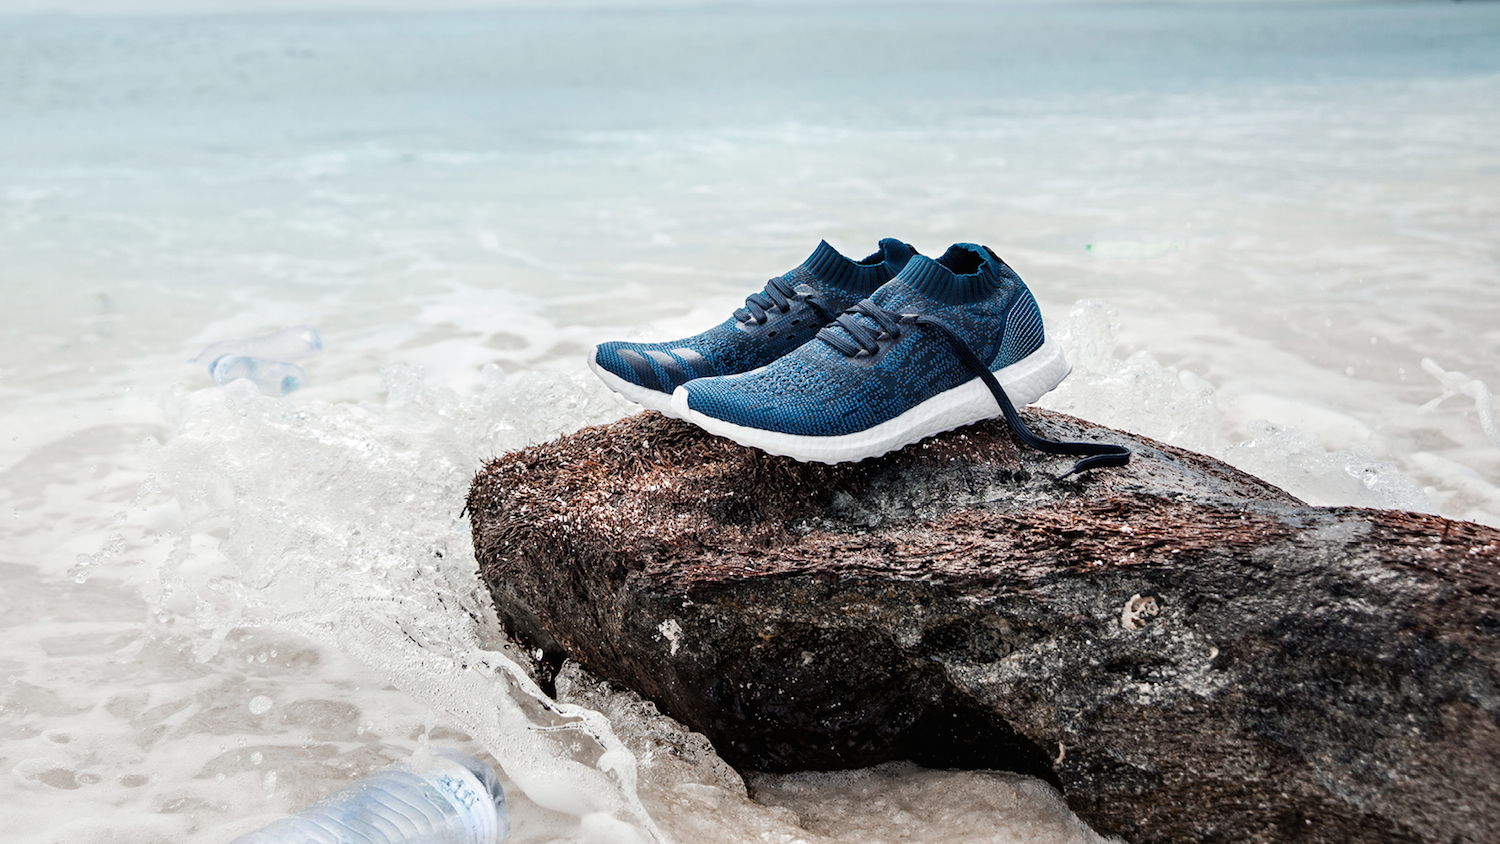 timeless design 324fe 112f0 11 Plastic Bottles Times One Million—Here are the New Parley x Adidas  Sneakers